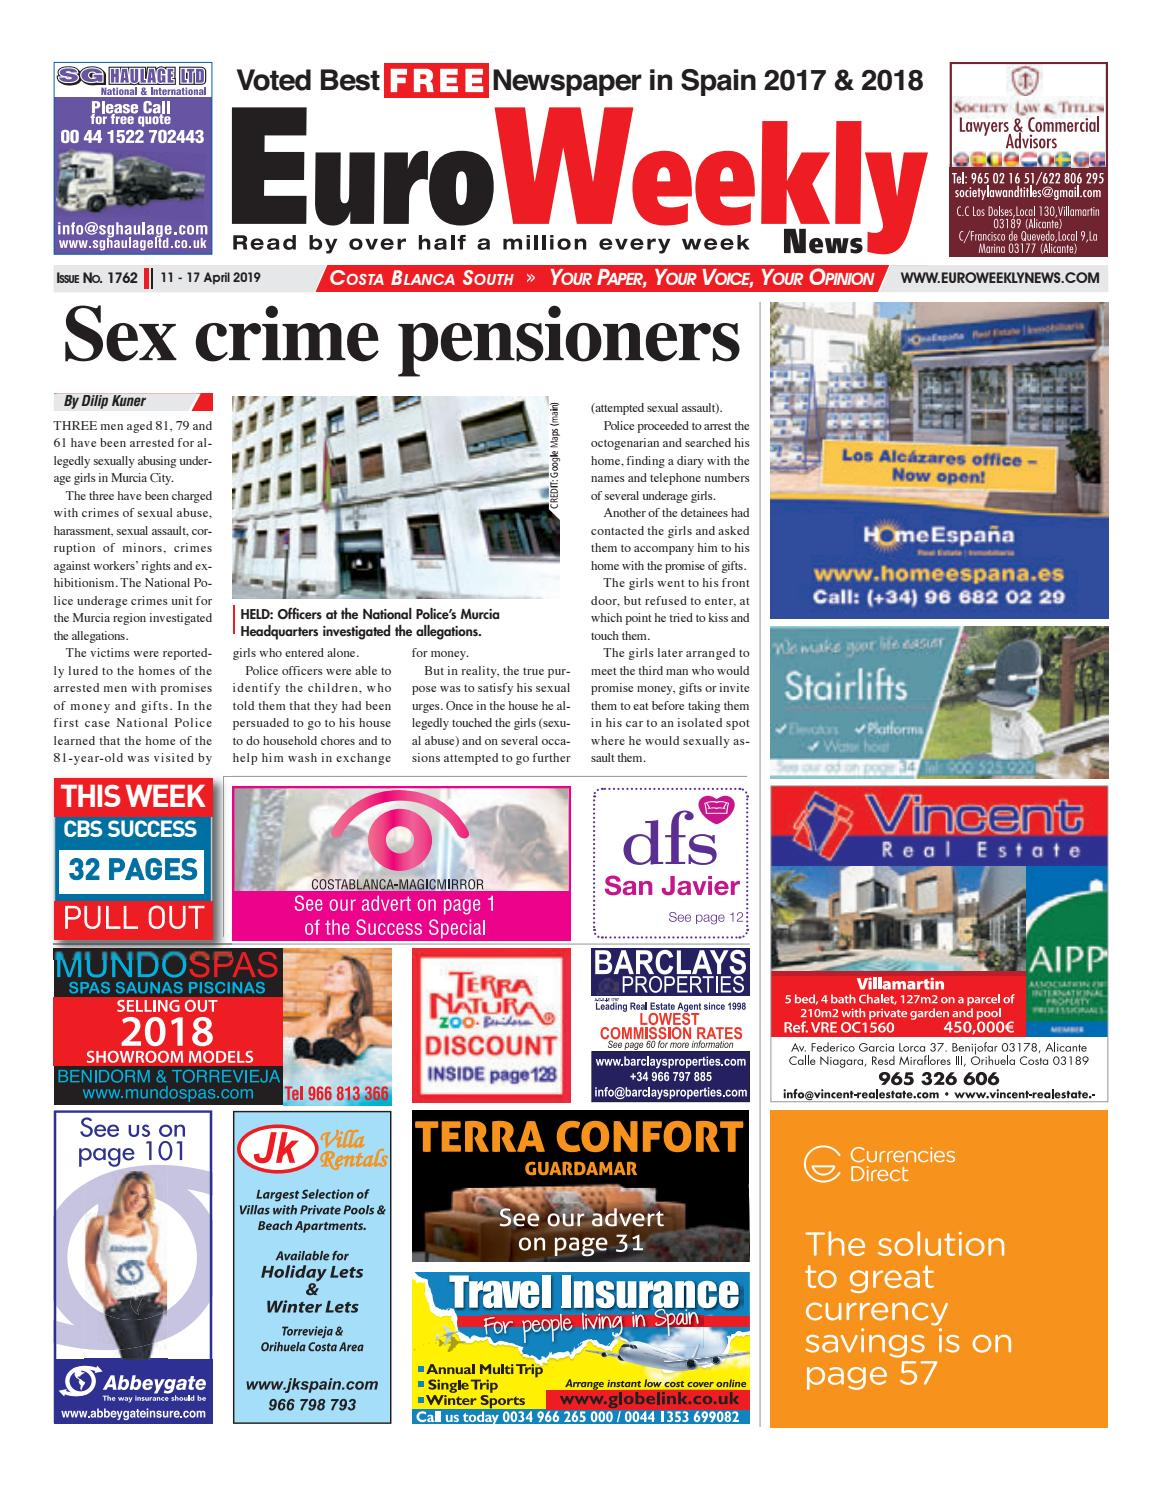 Euro Weekly News - Costa Blanca South 11 - 17 April 2019